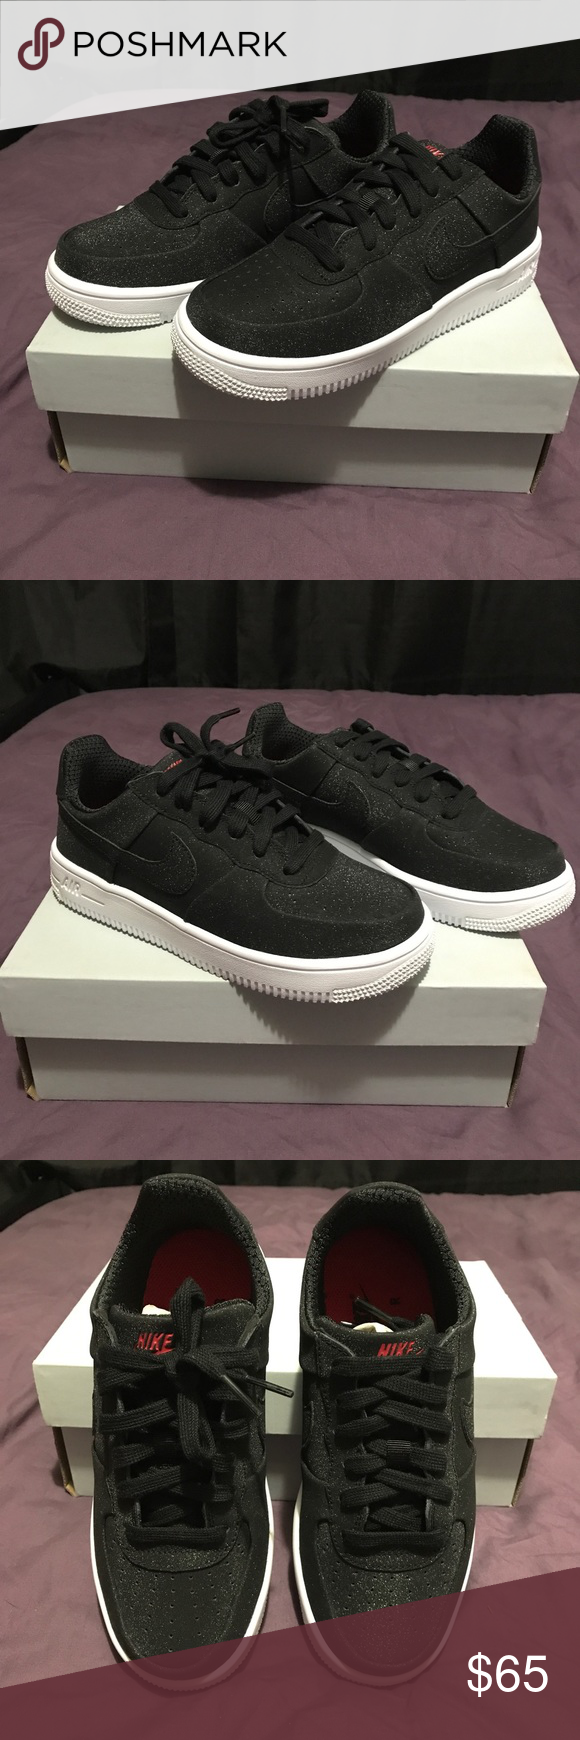 9326eb260167 Brand New Nike Air Force One Black Glitter 6.5 Brand New! Never Worn! Unique